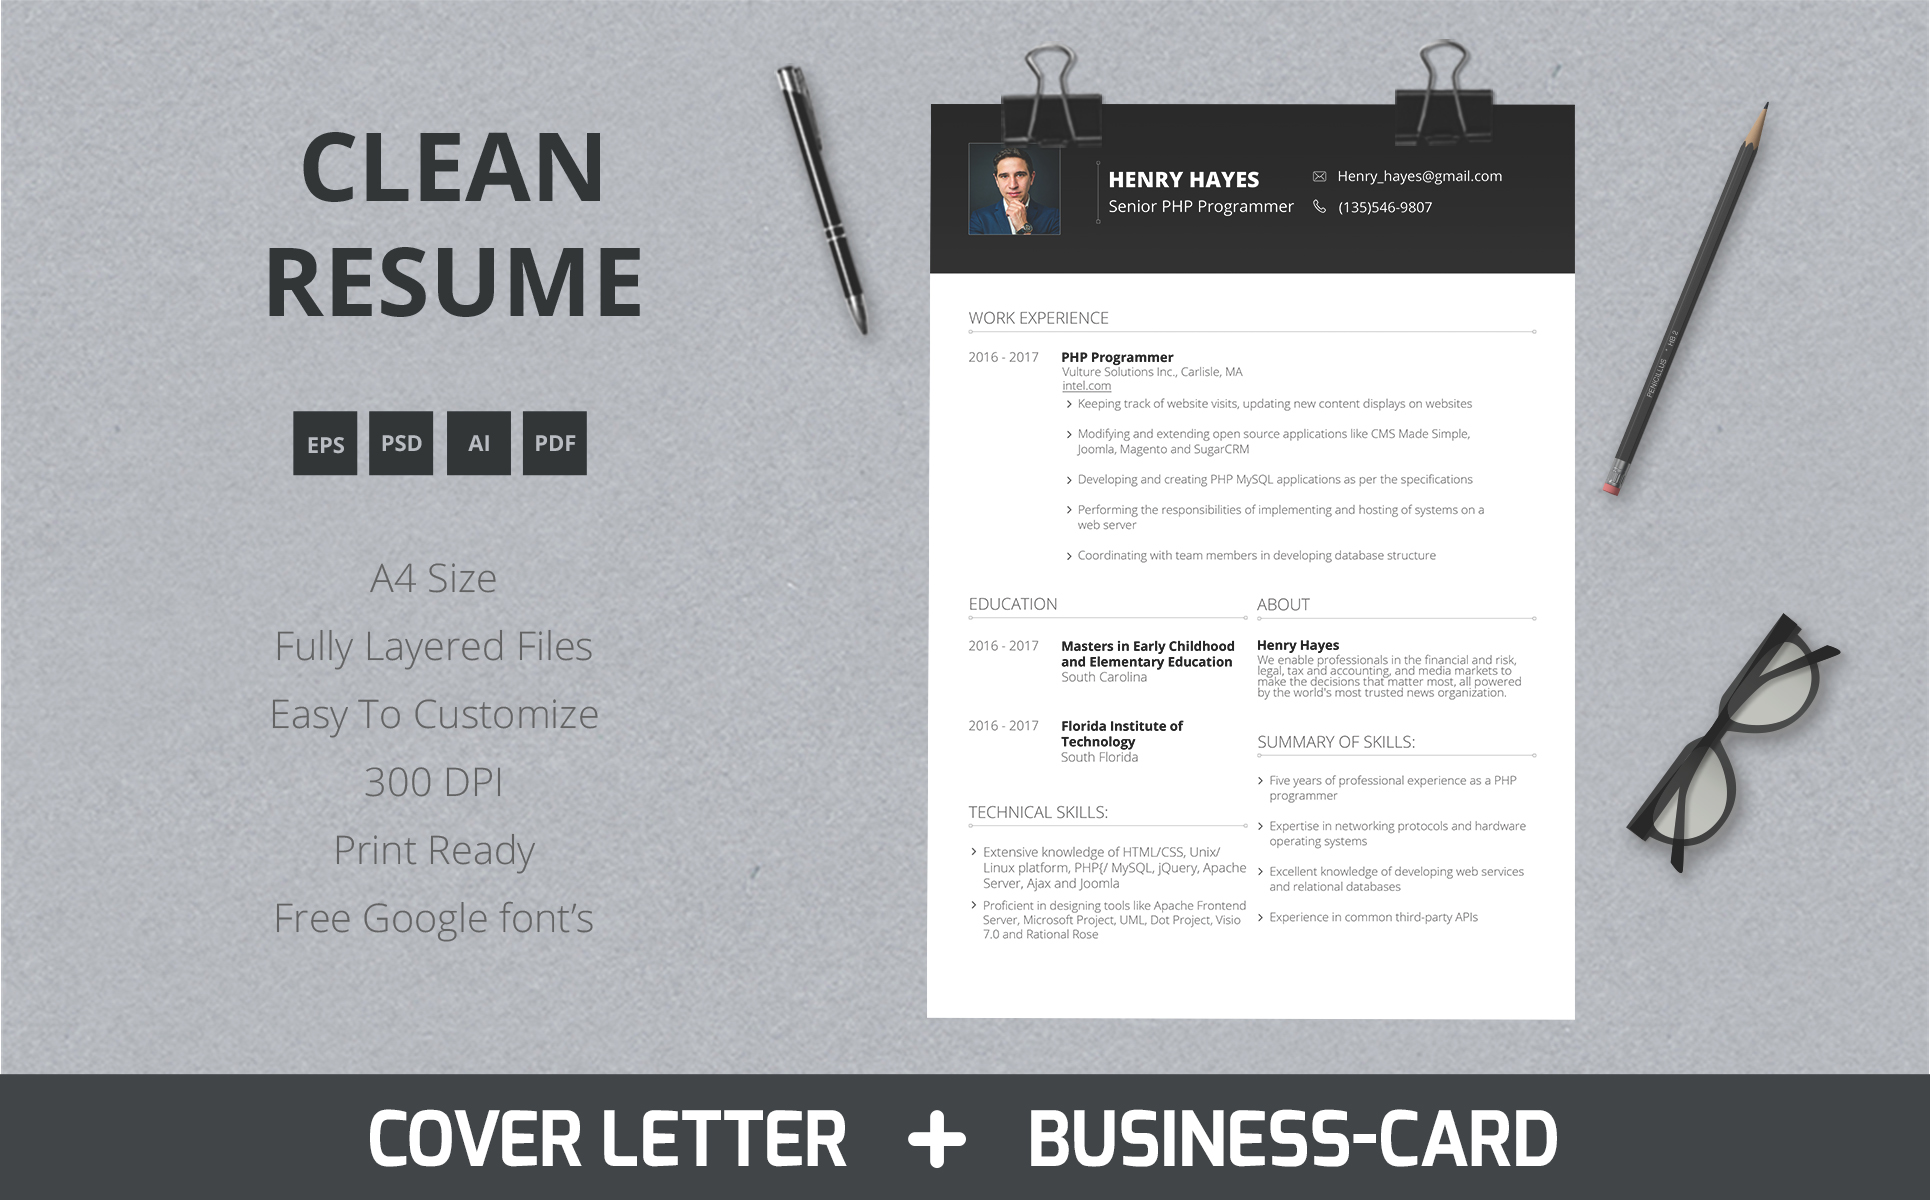 Henry Hayes Web Developer Resume Template 64898